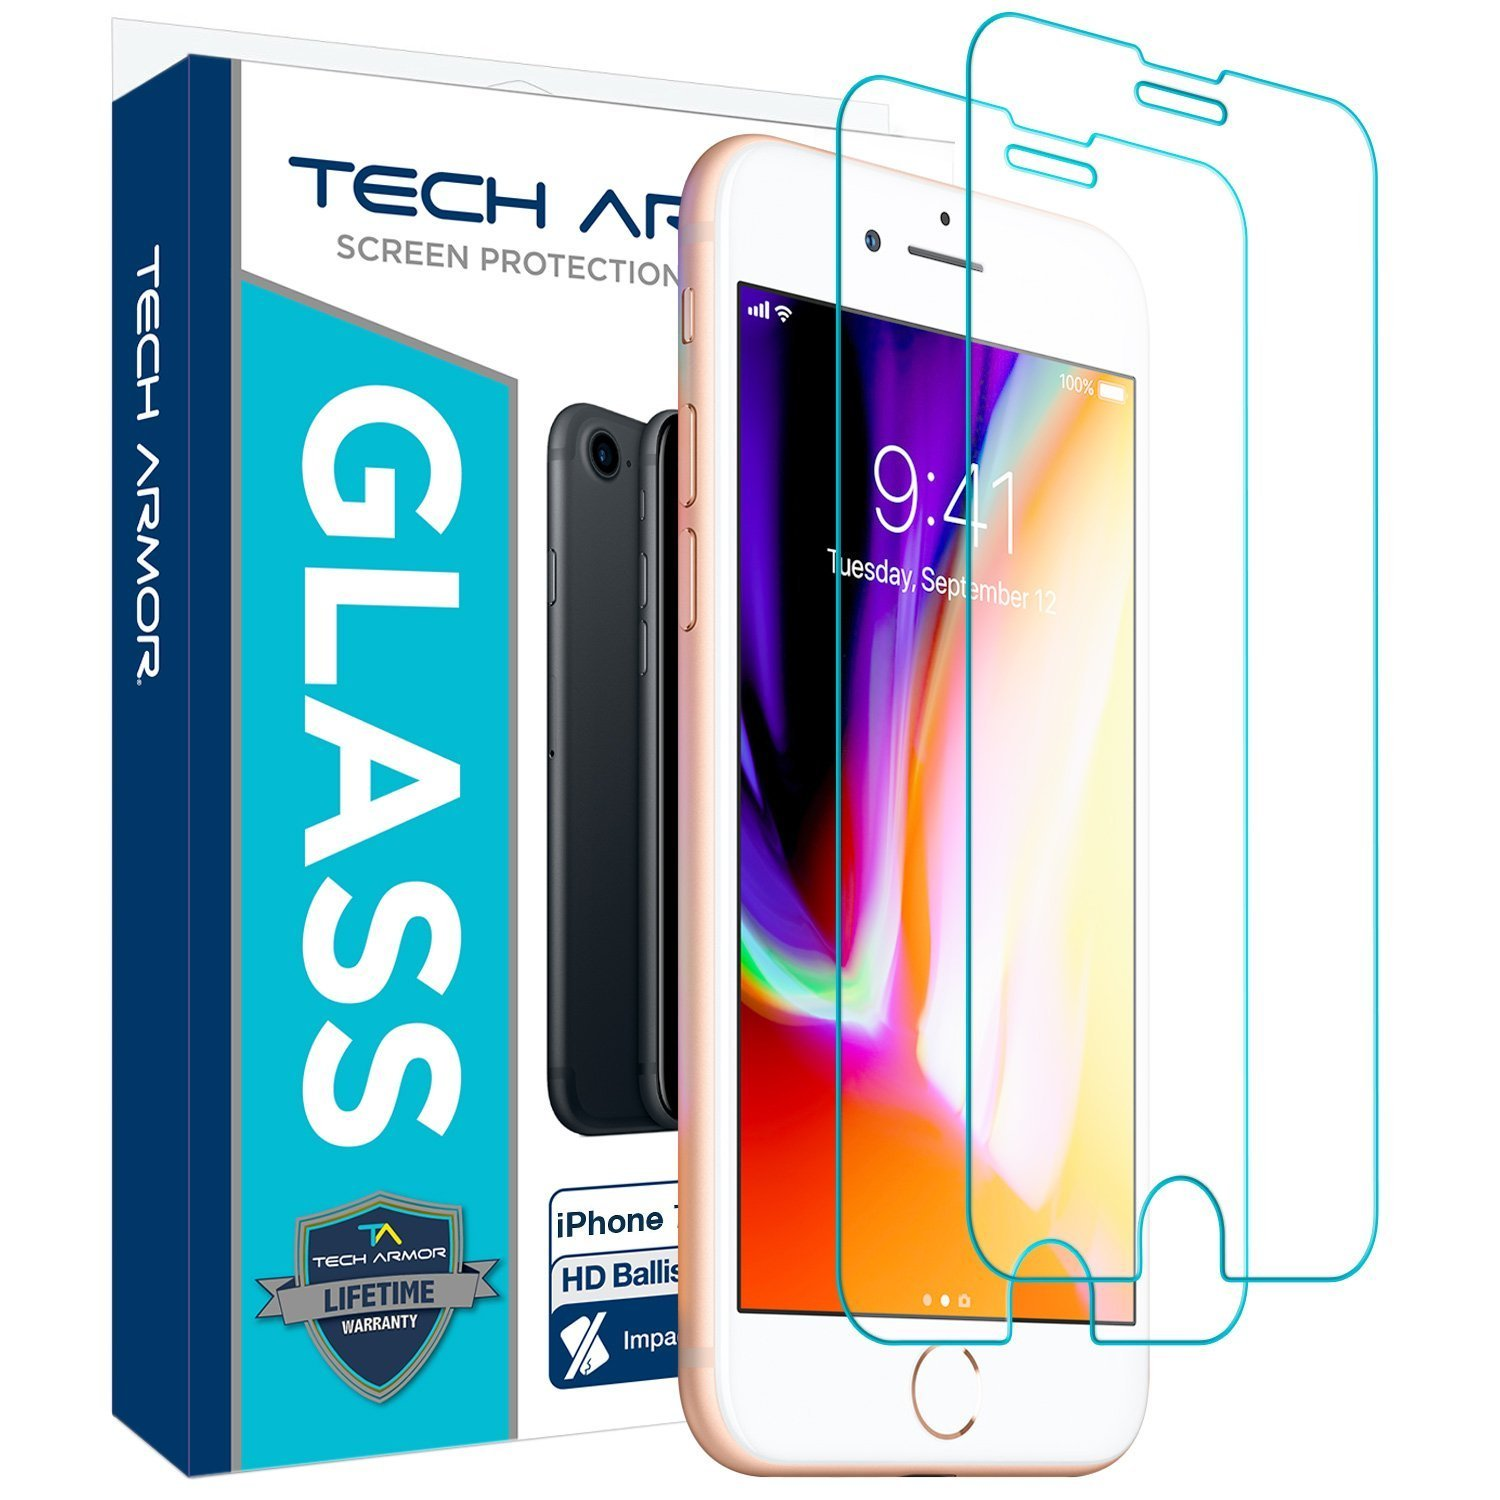 Tech Armor Apple iPhone 7, iPhone 6, iPhone 8 Ballistic Glass Screen Protector [2-Pack]